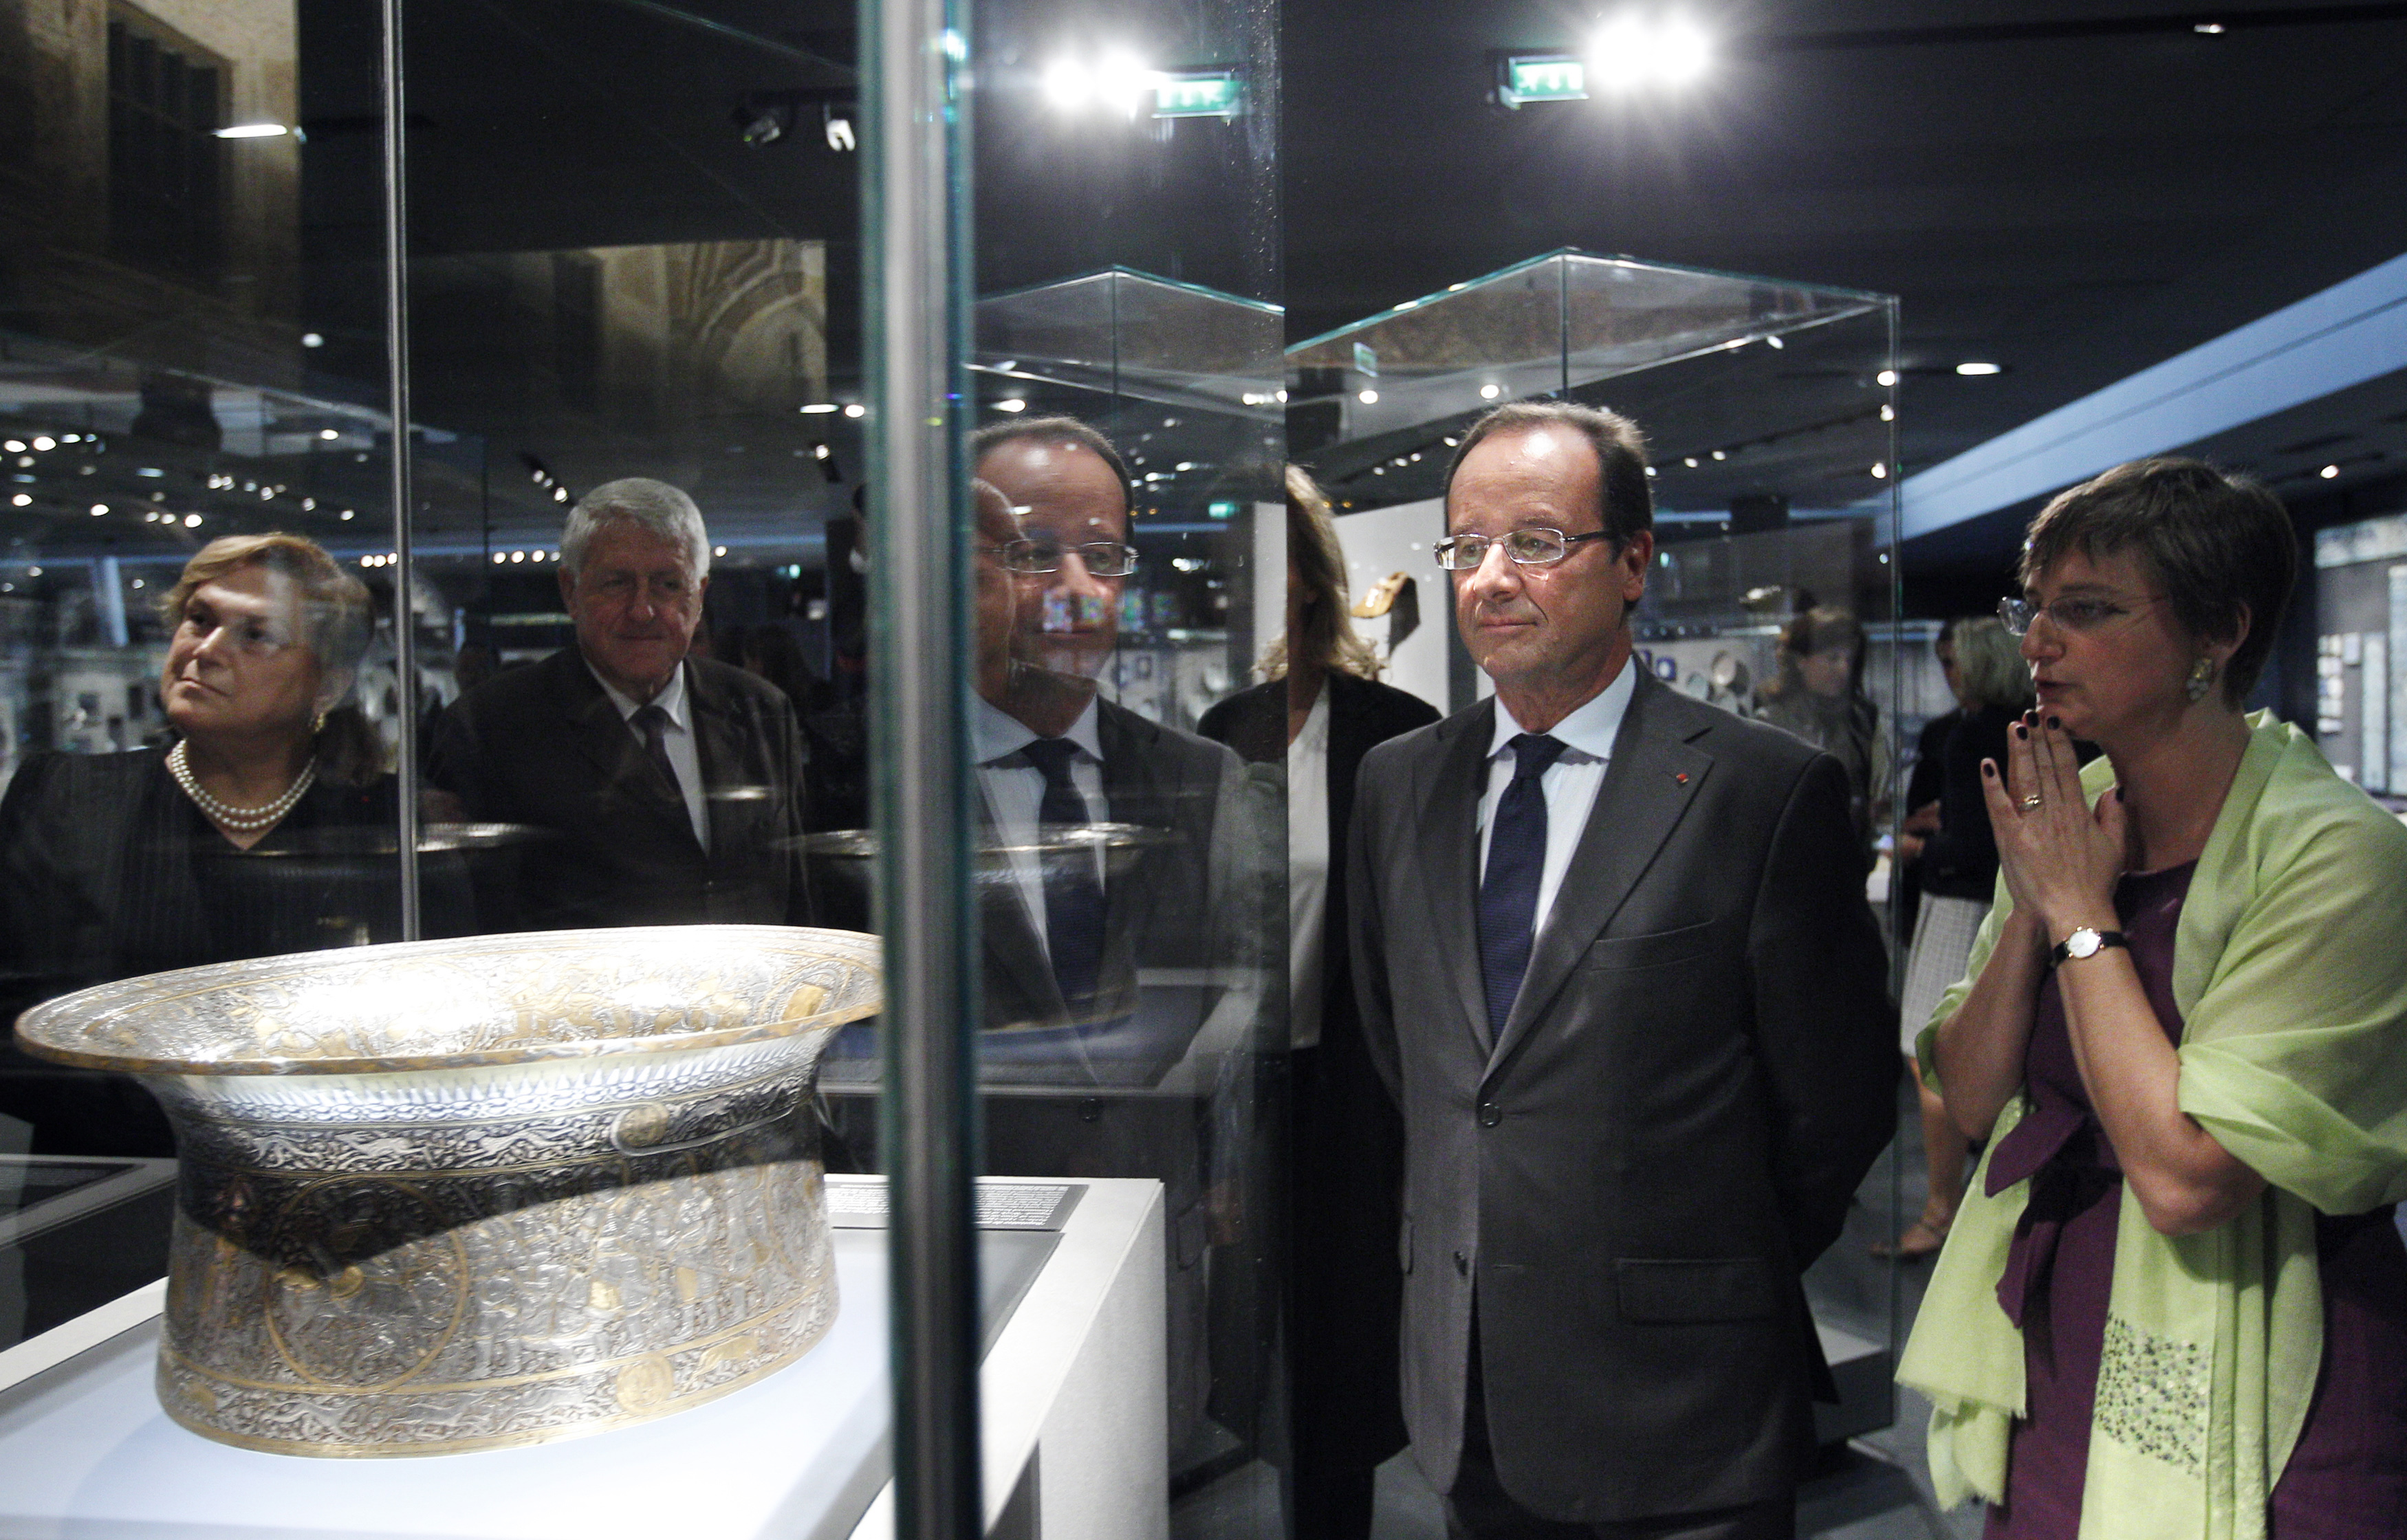 French President Francois Hollande visiting the Department of Islamic Arts galleries at the Louvre in 2012.